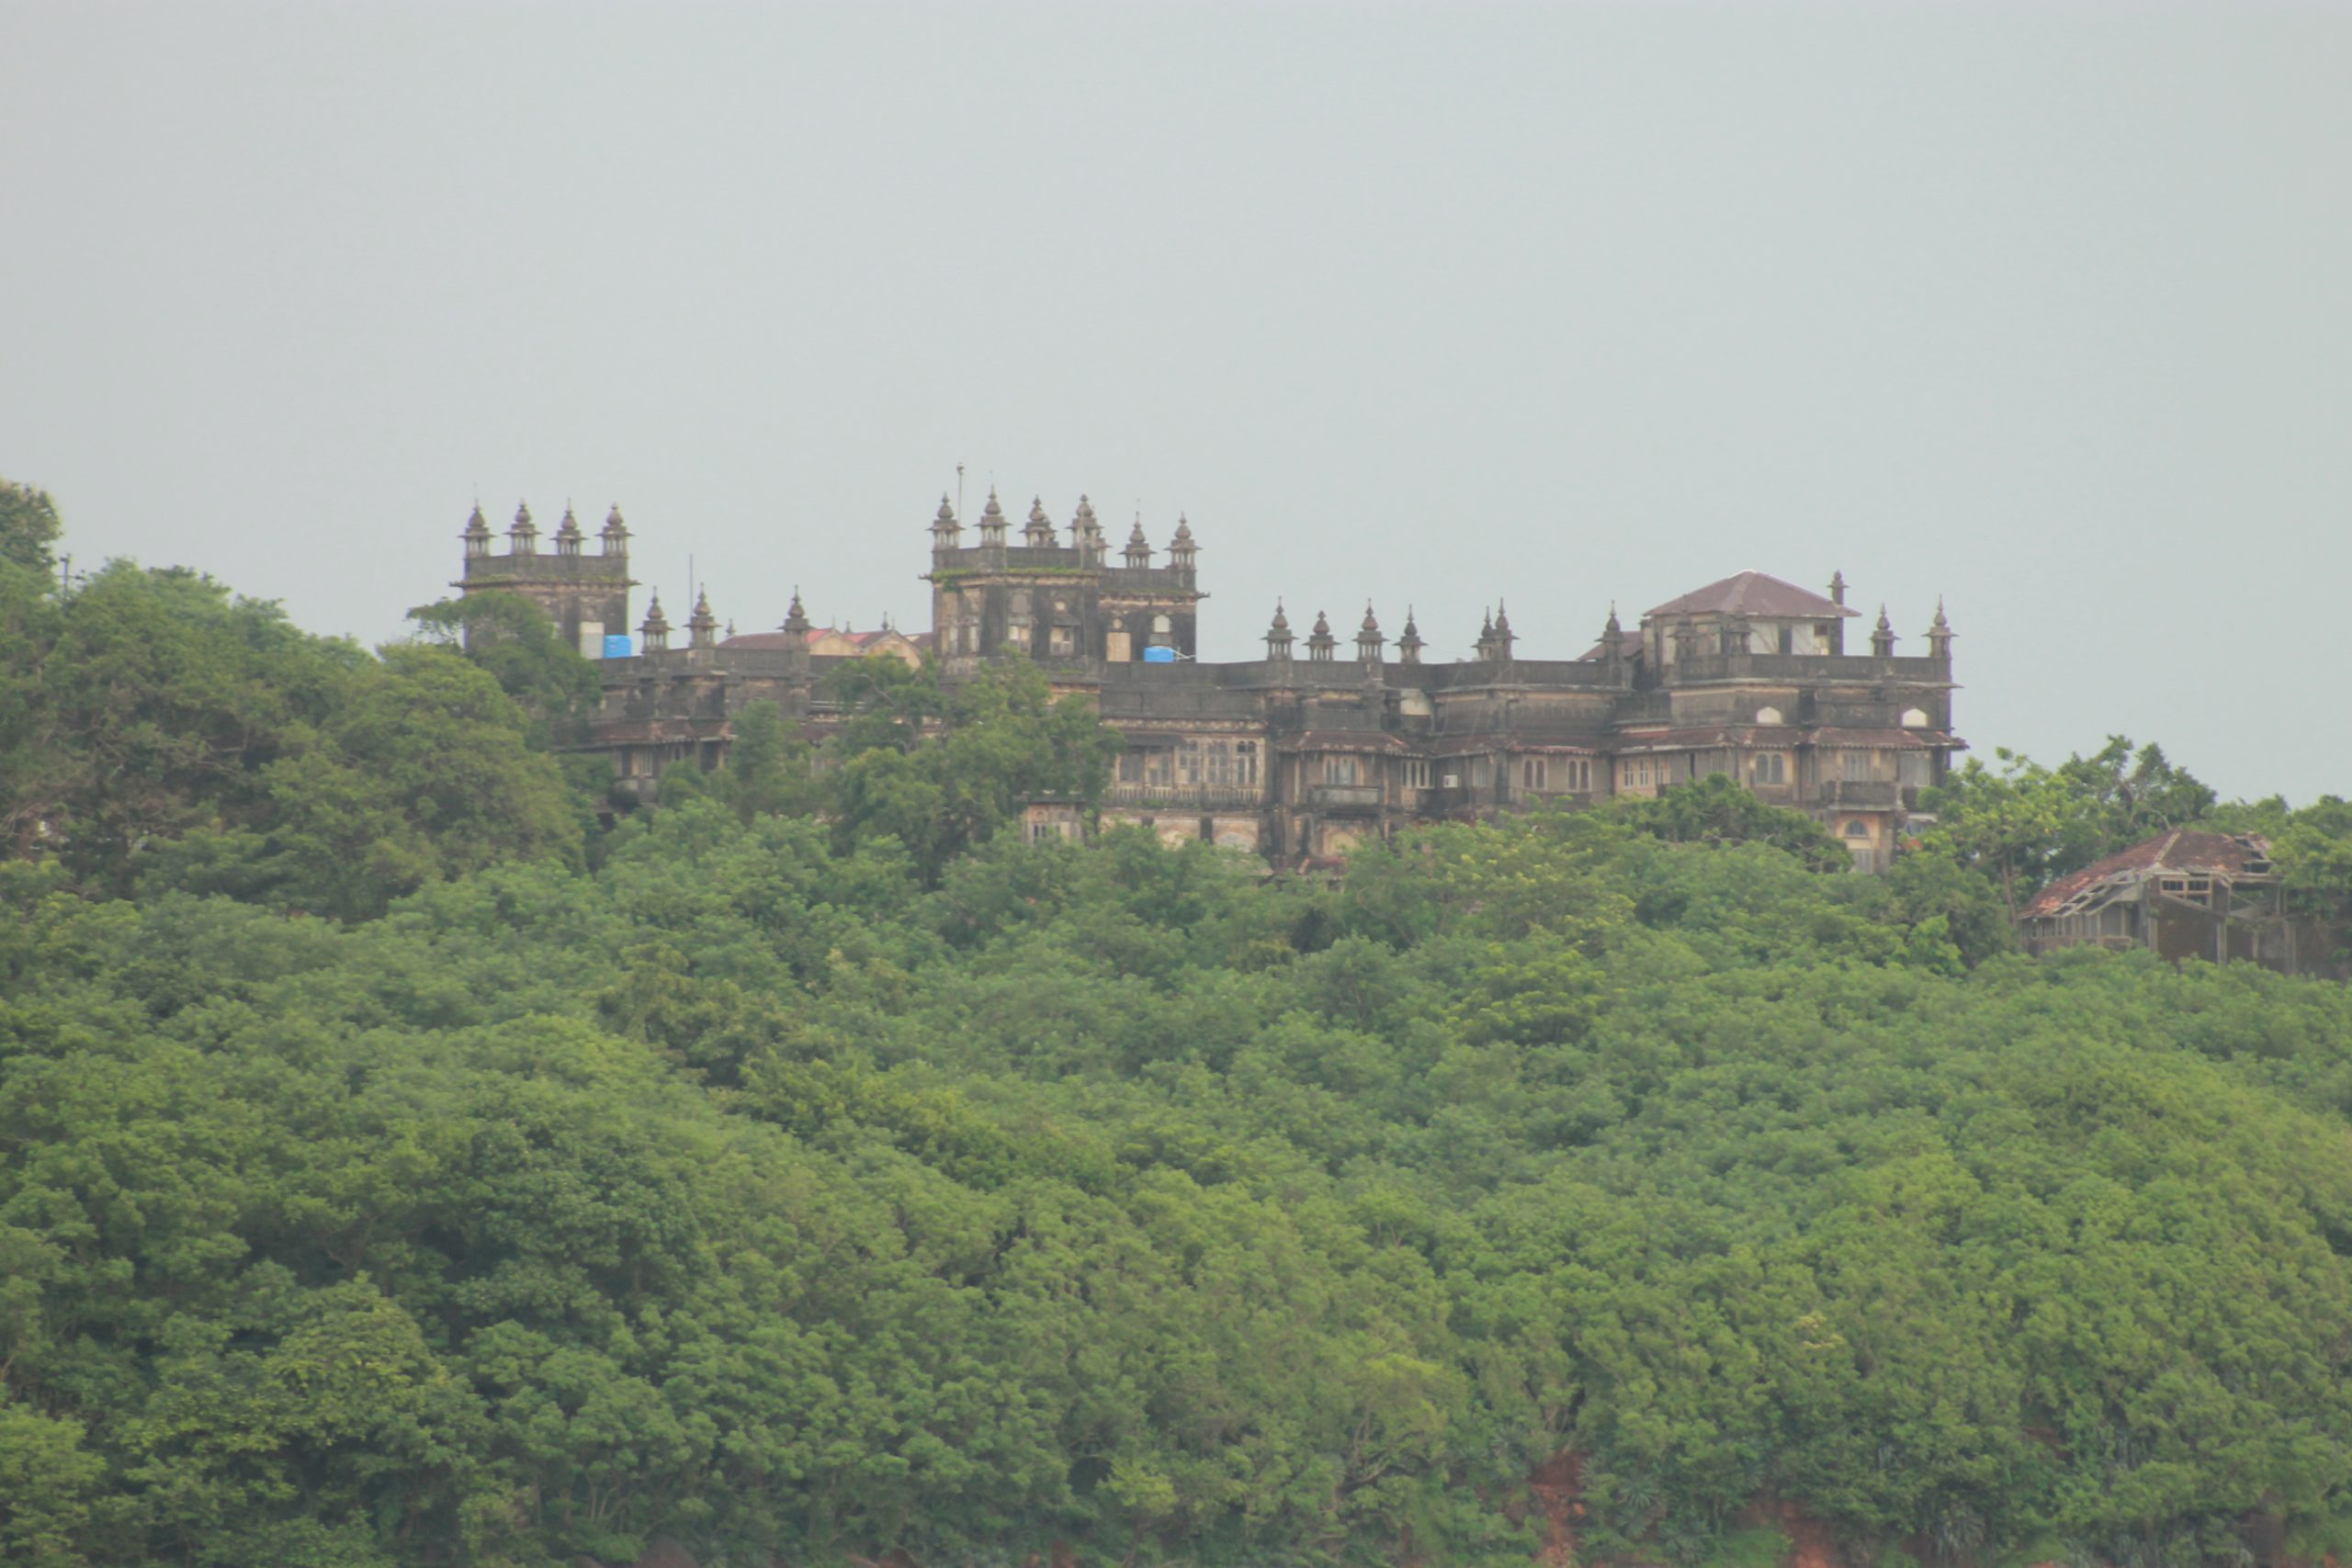 Palace in the forest